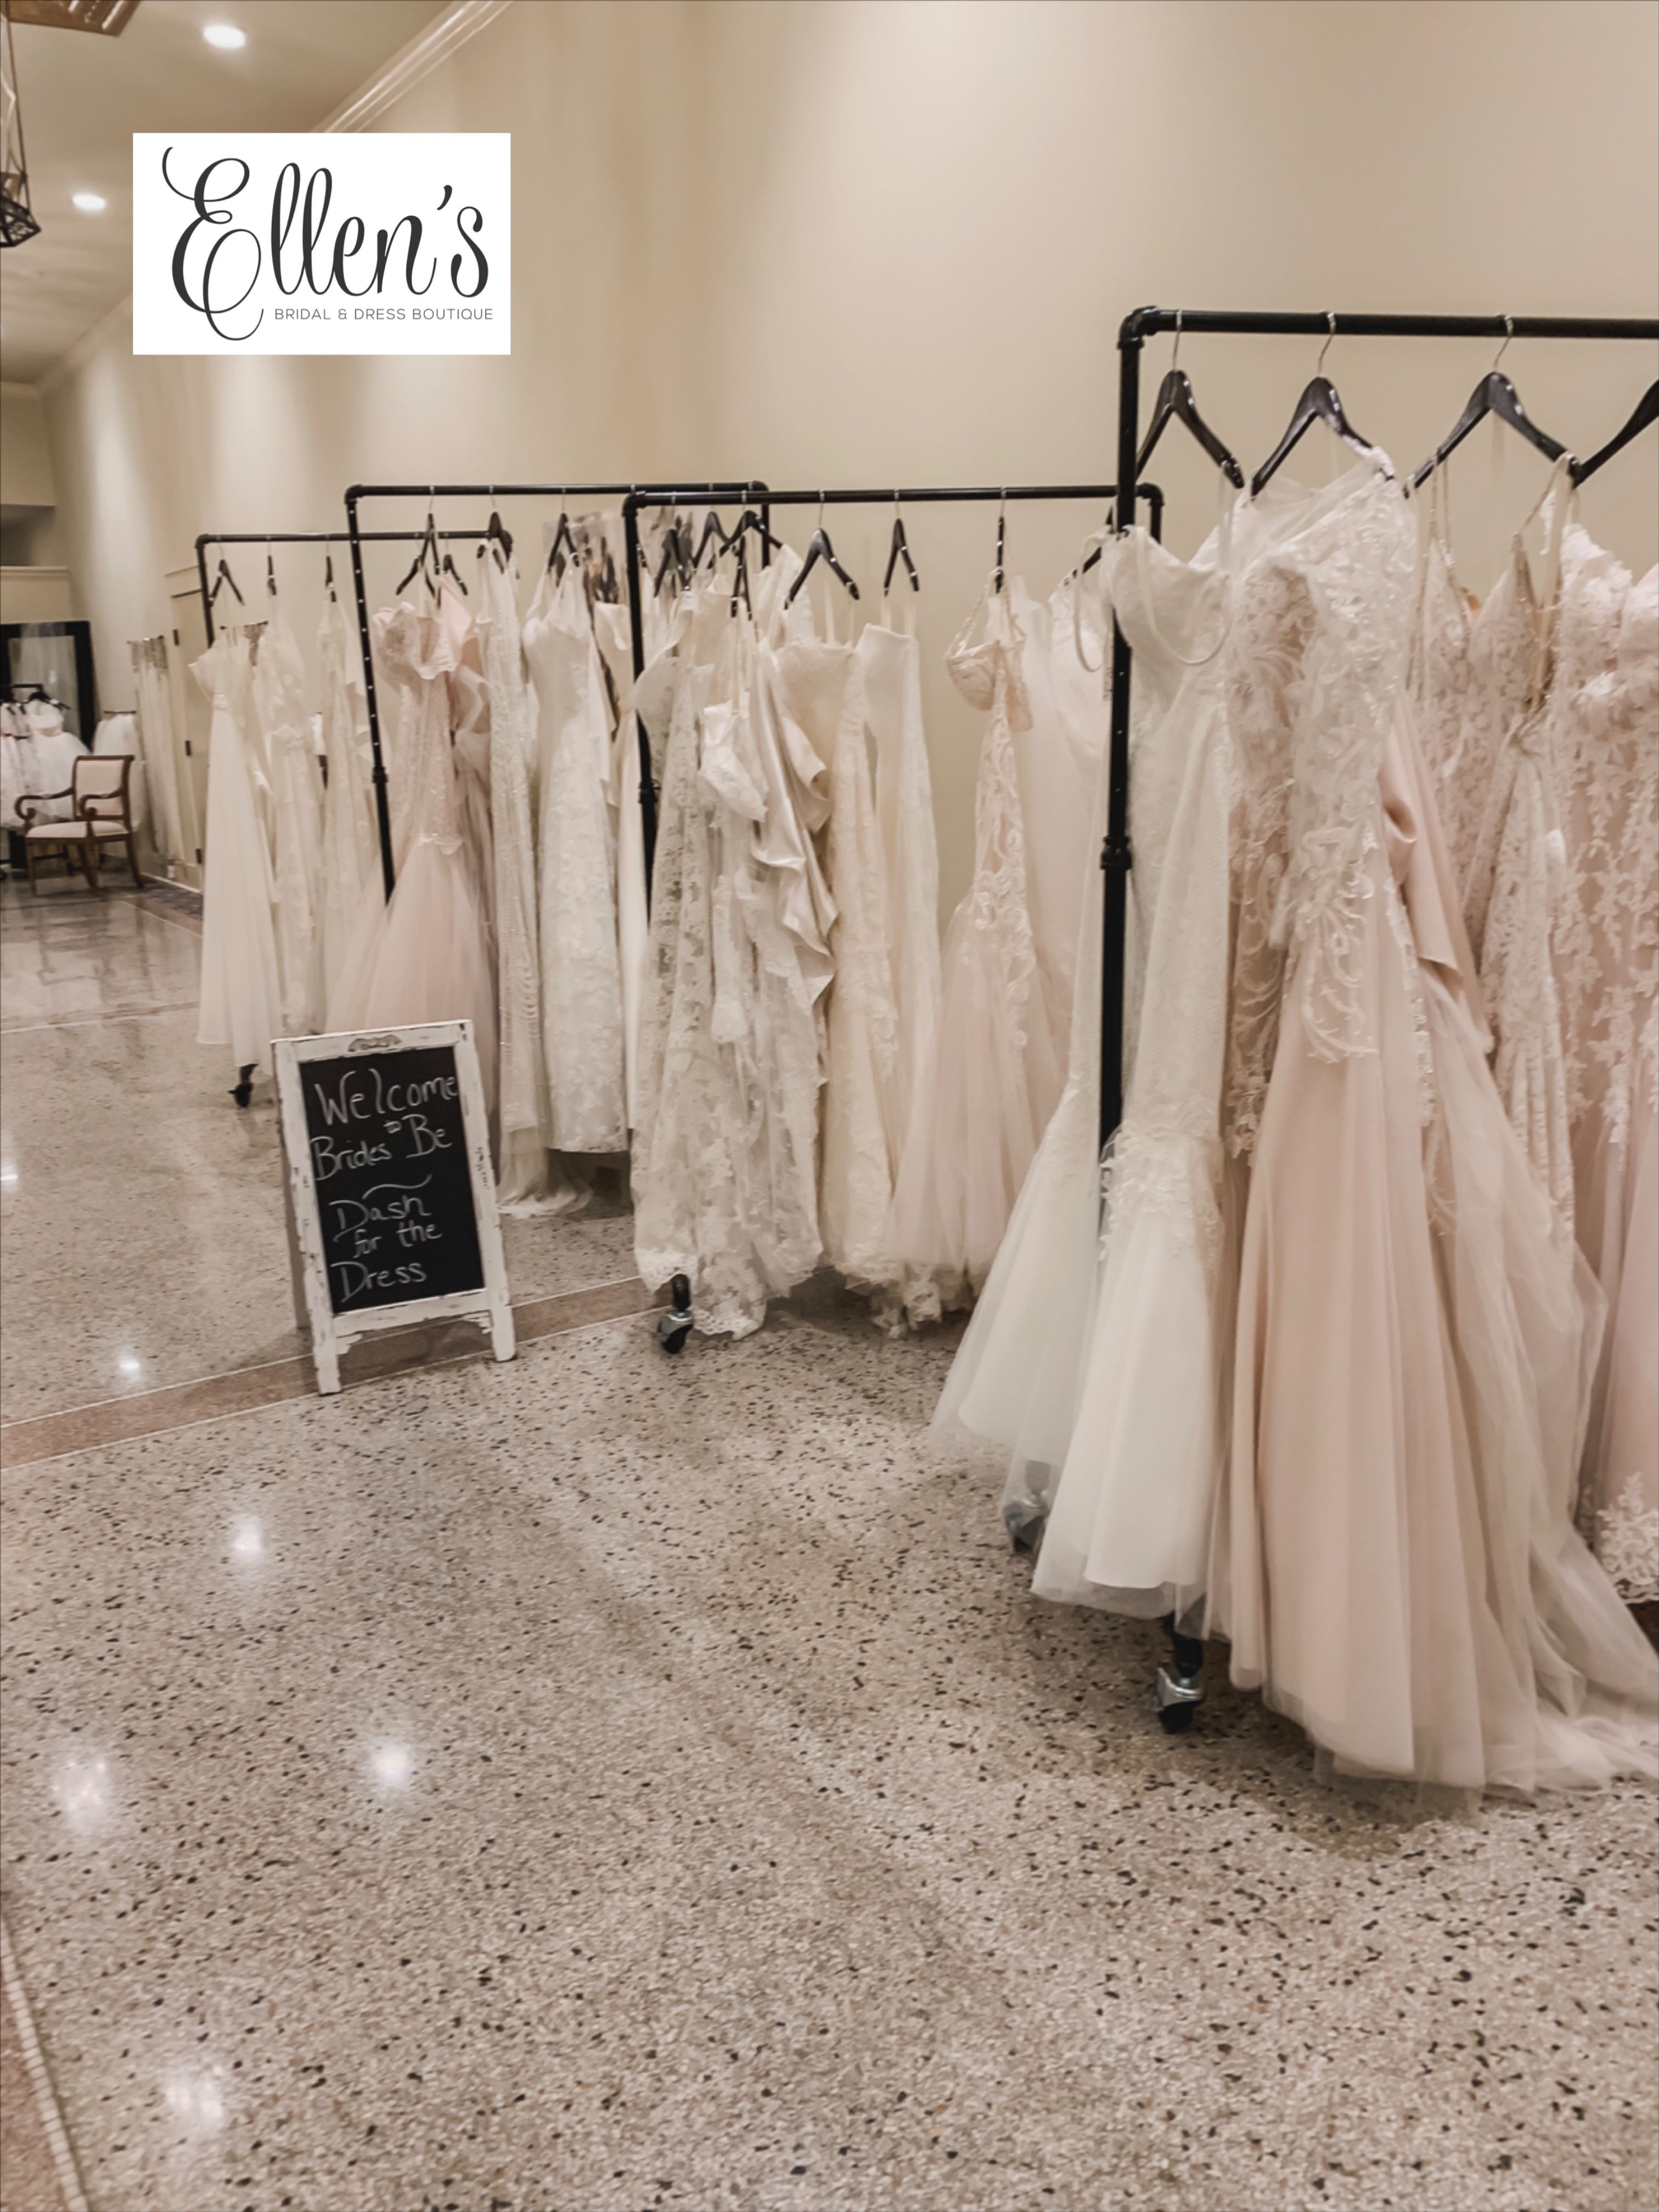 Here Was Our Setup For The Dash For The Dress Sale 2019 We Are Considering Making Our Store Open Stock Meaning Upscale Wedding Dress Boutique Dresses Bridal